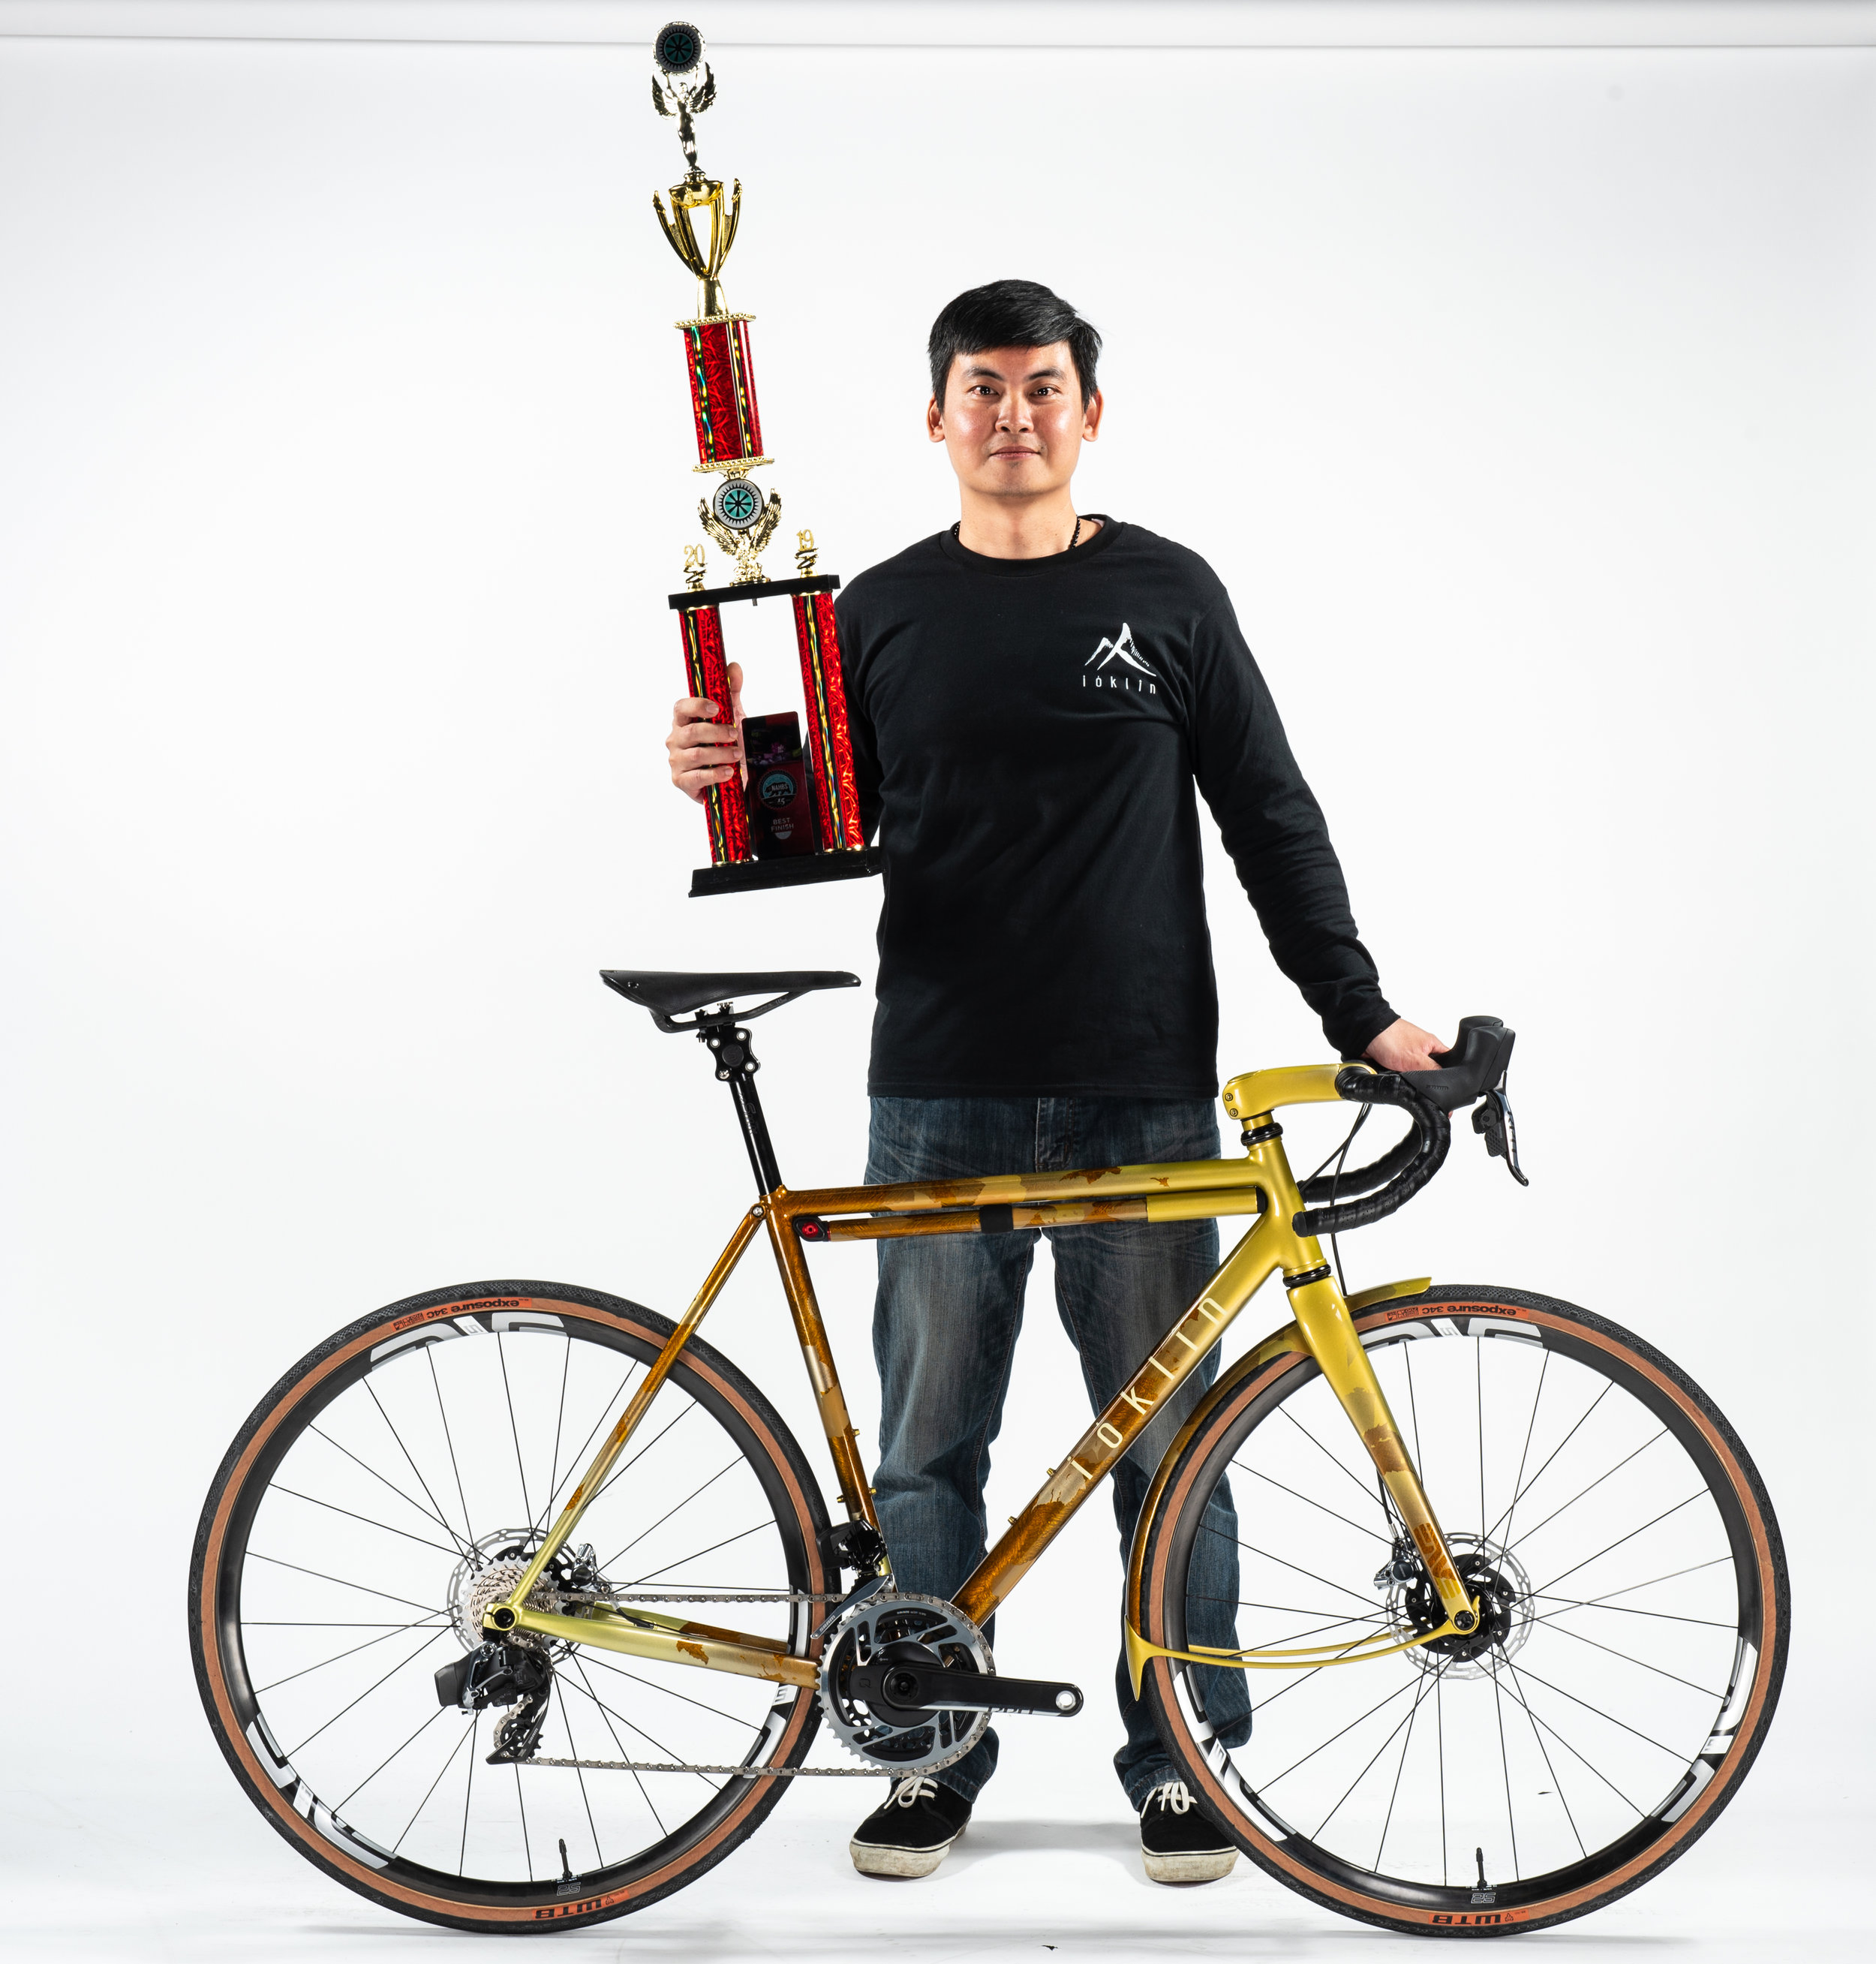 ioklin_best_finish_nahbs2019-bq-7.jpg